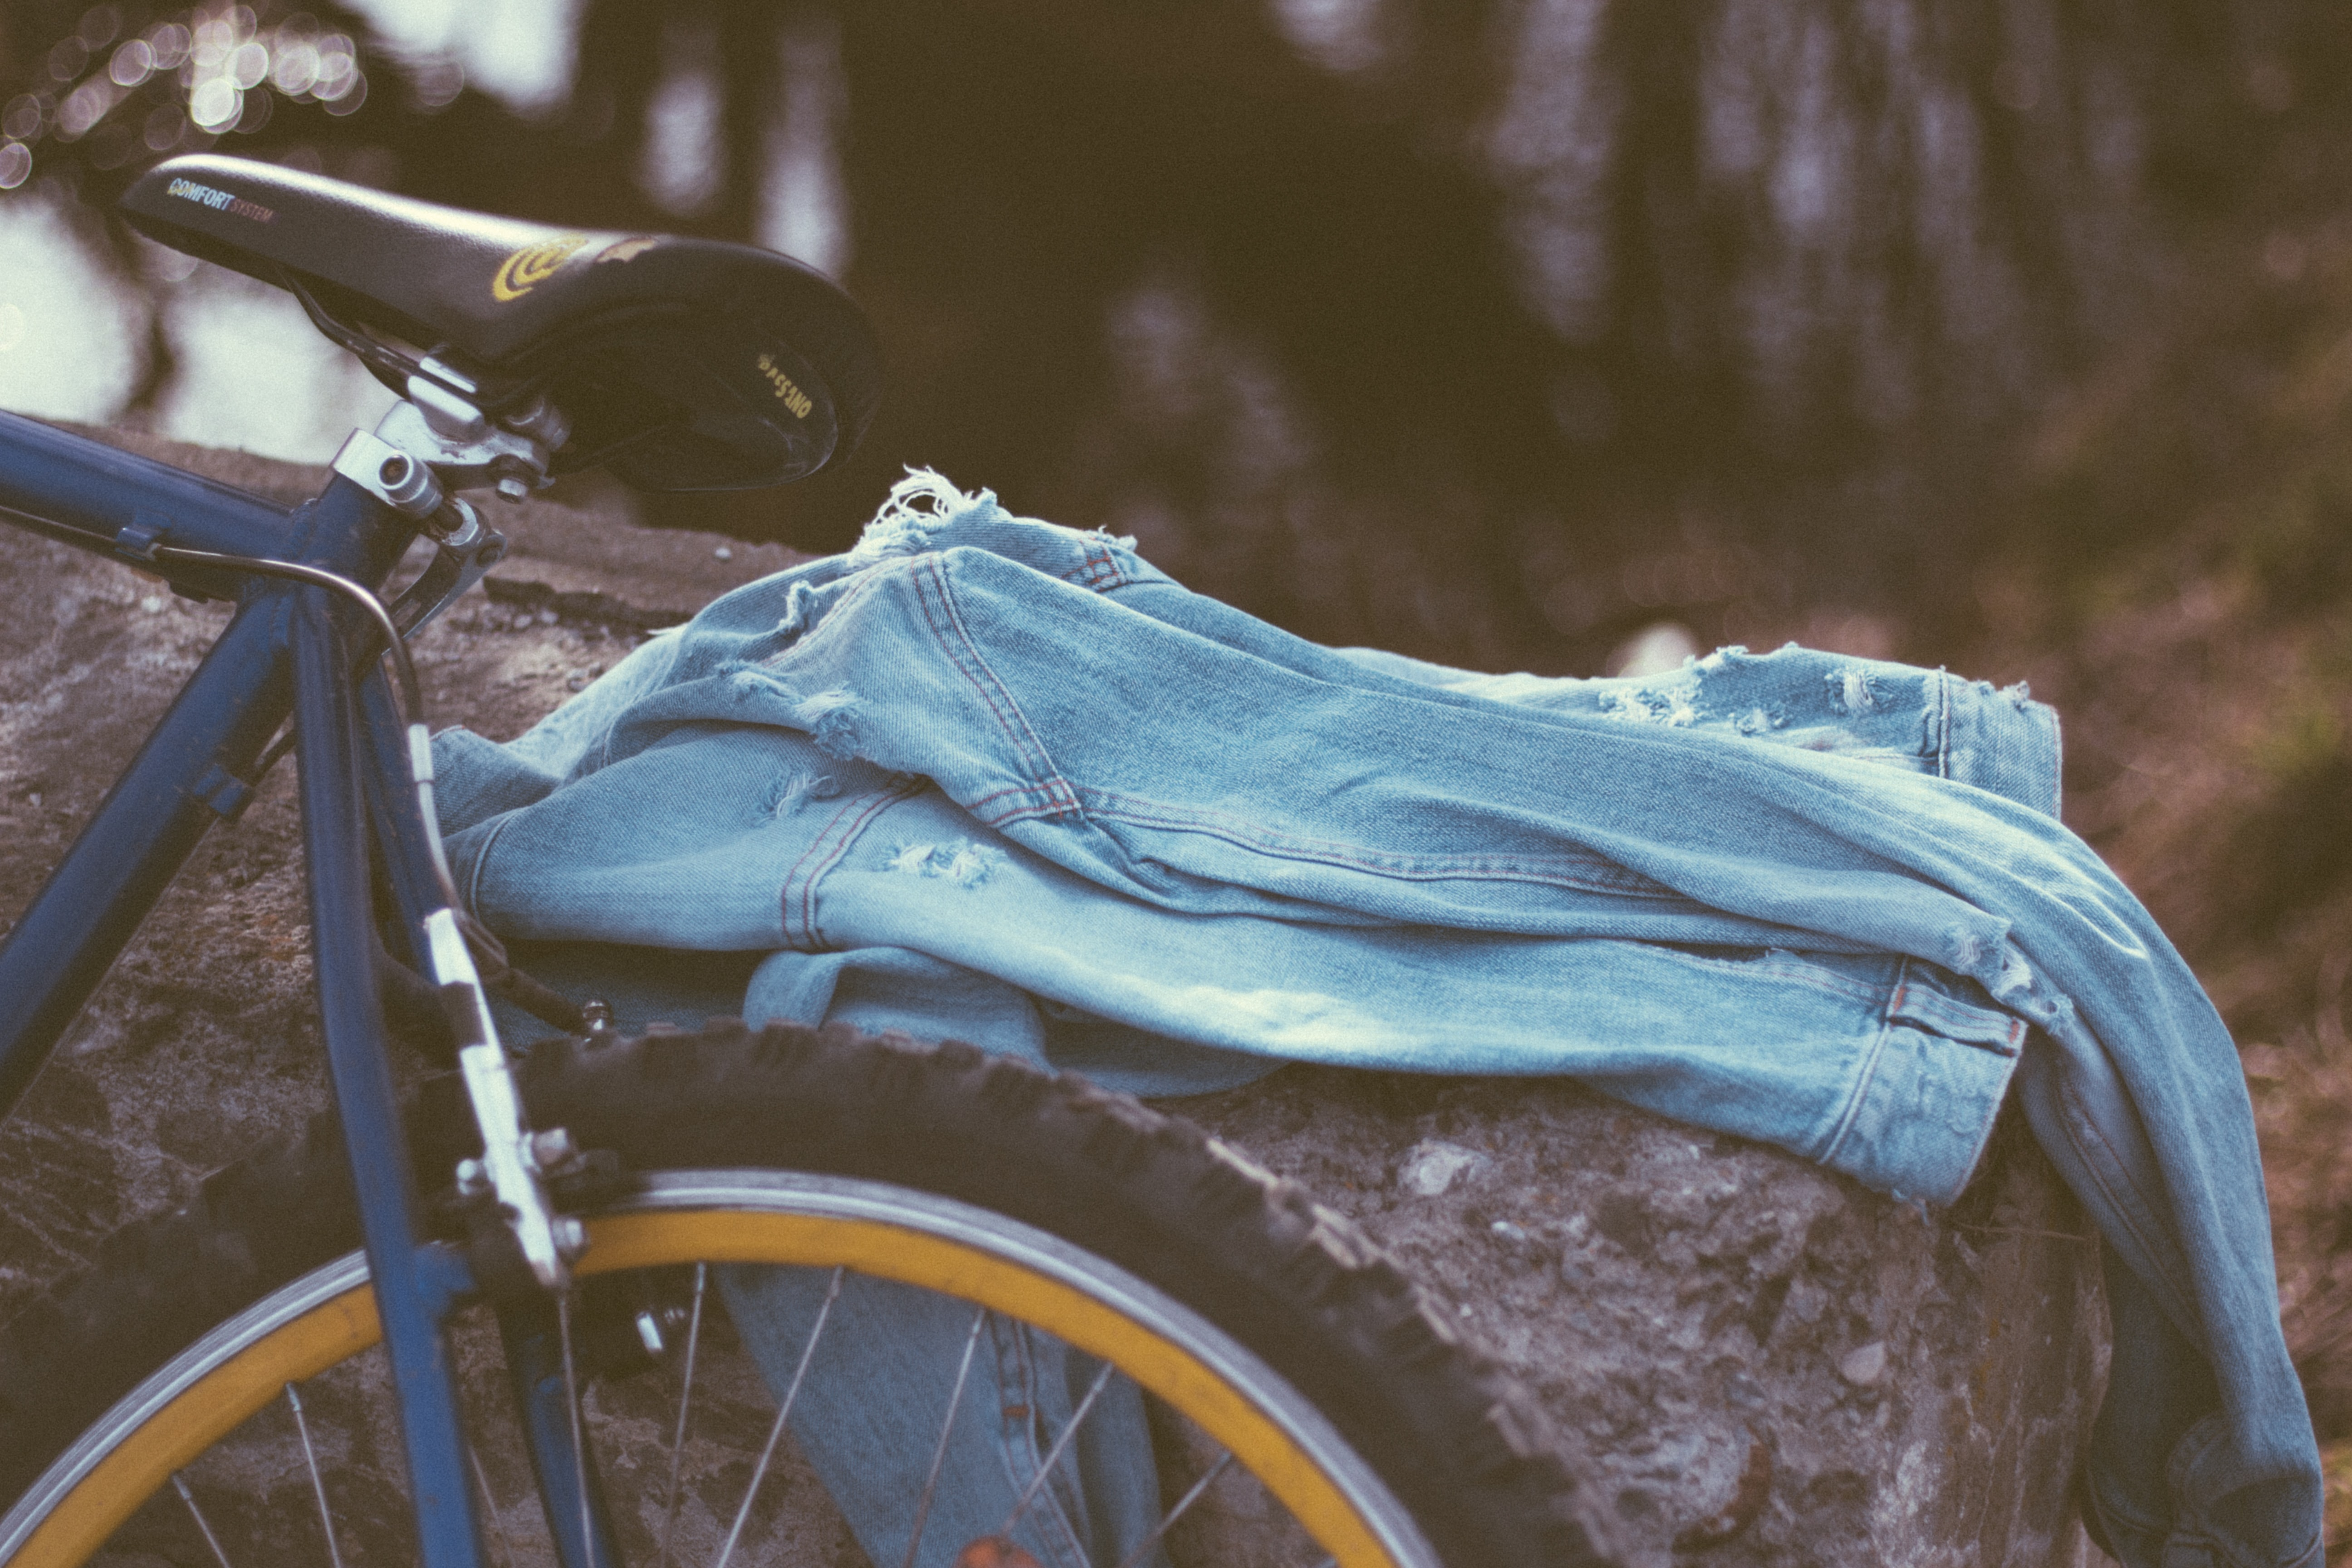 A pair of blue denim jeans on a log next to a bike in Prejmer